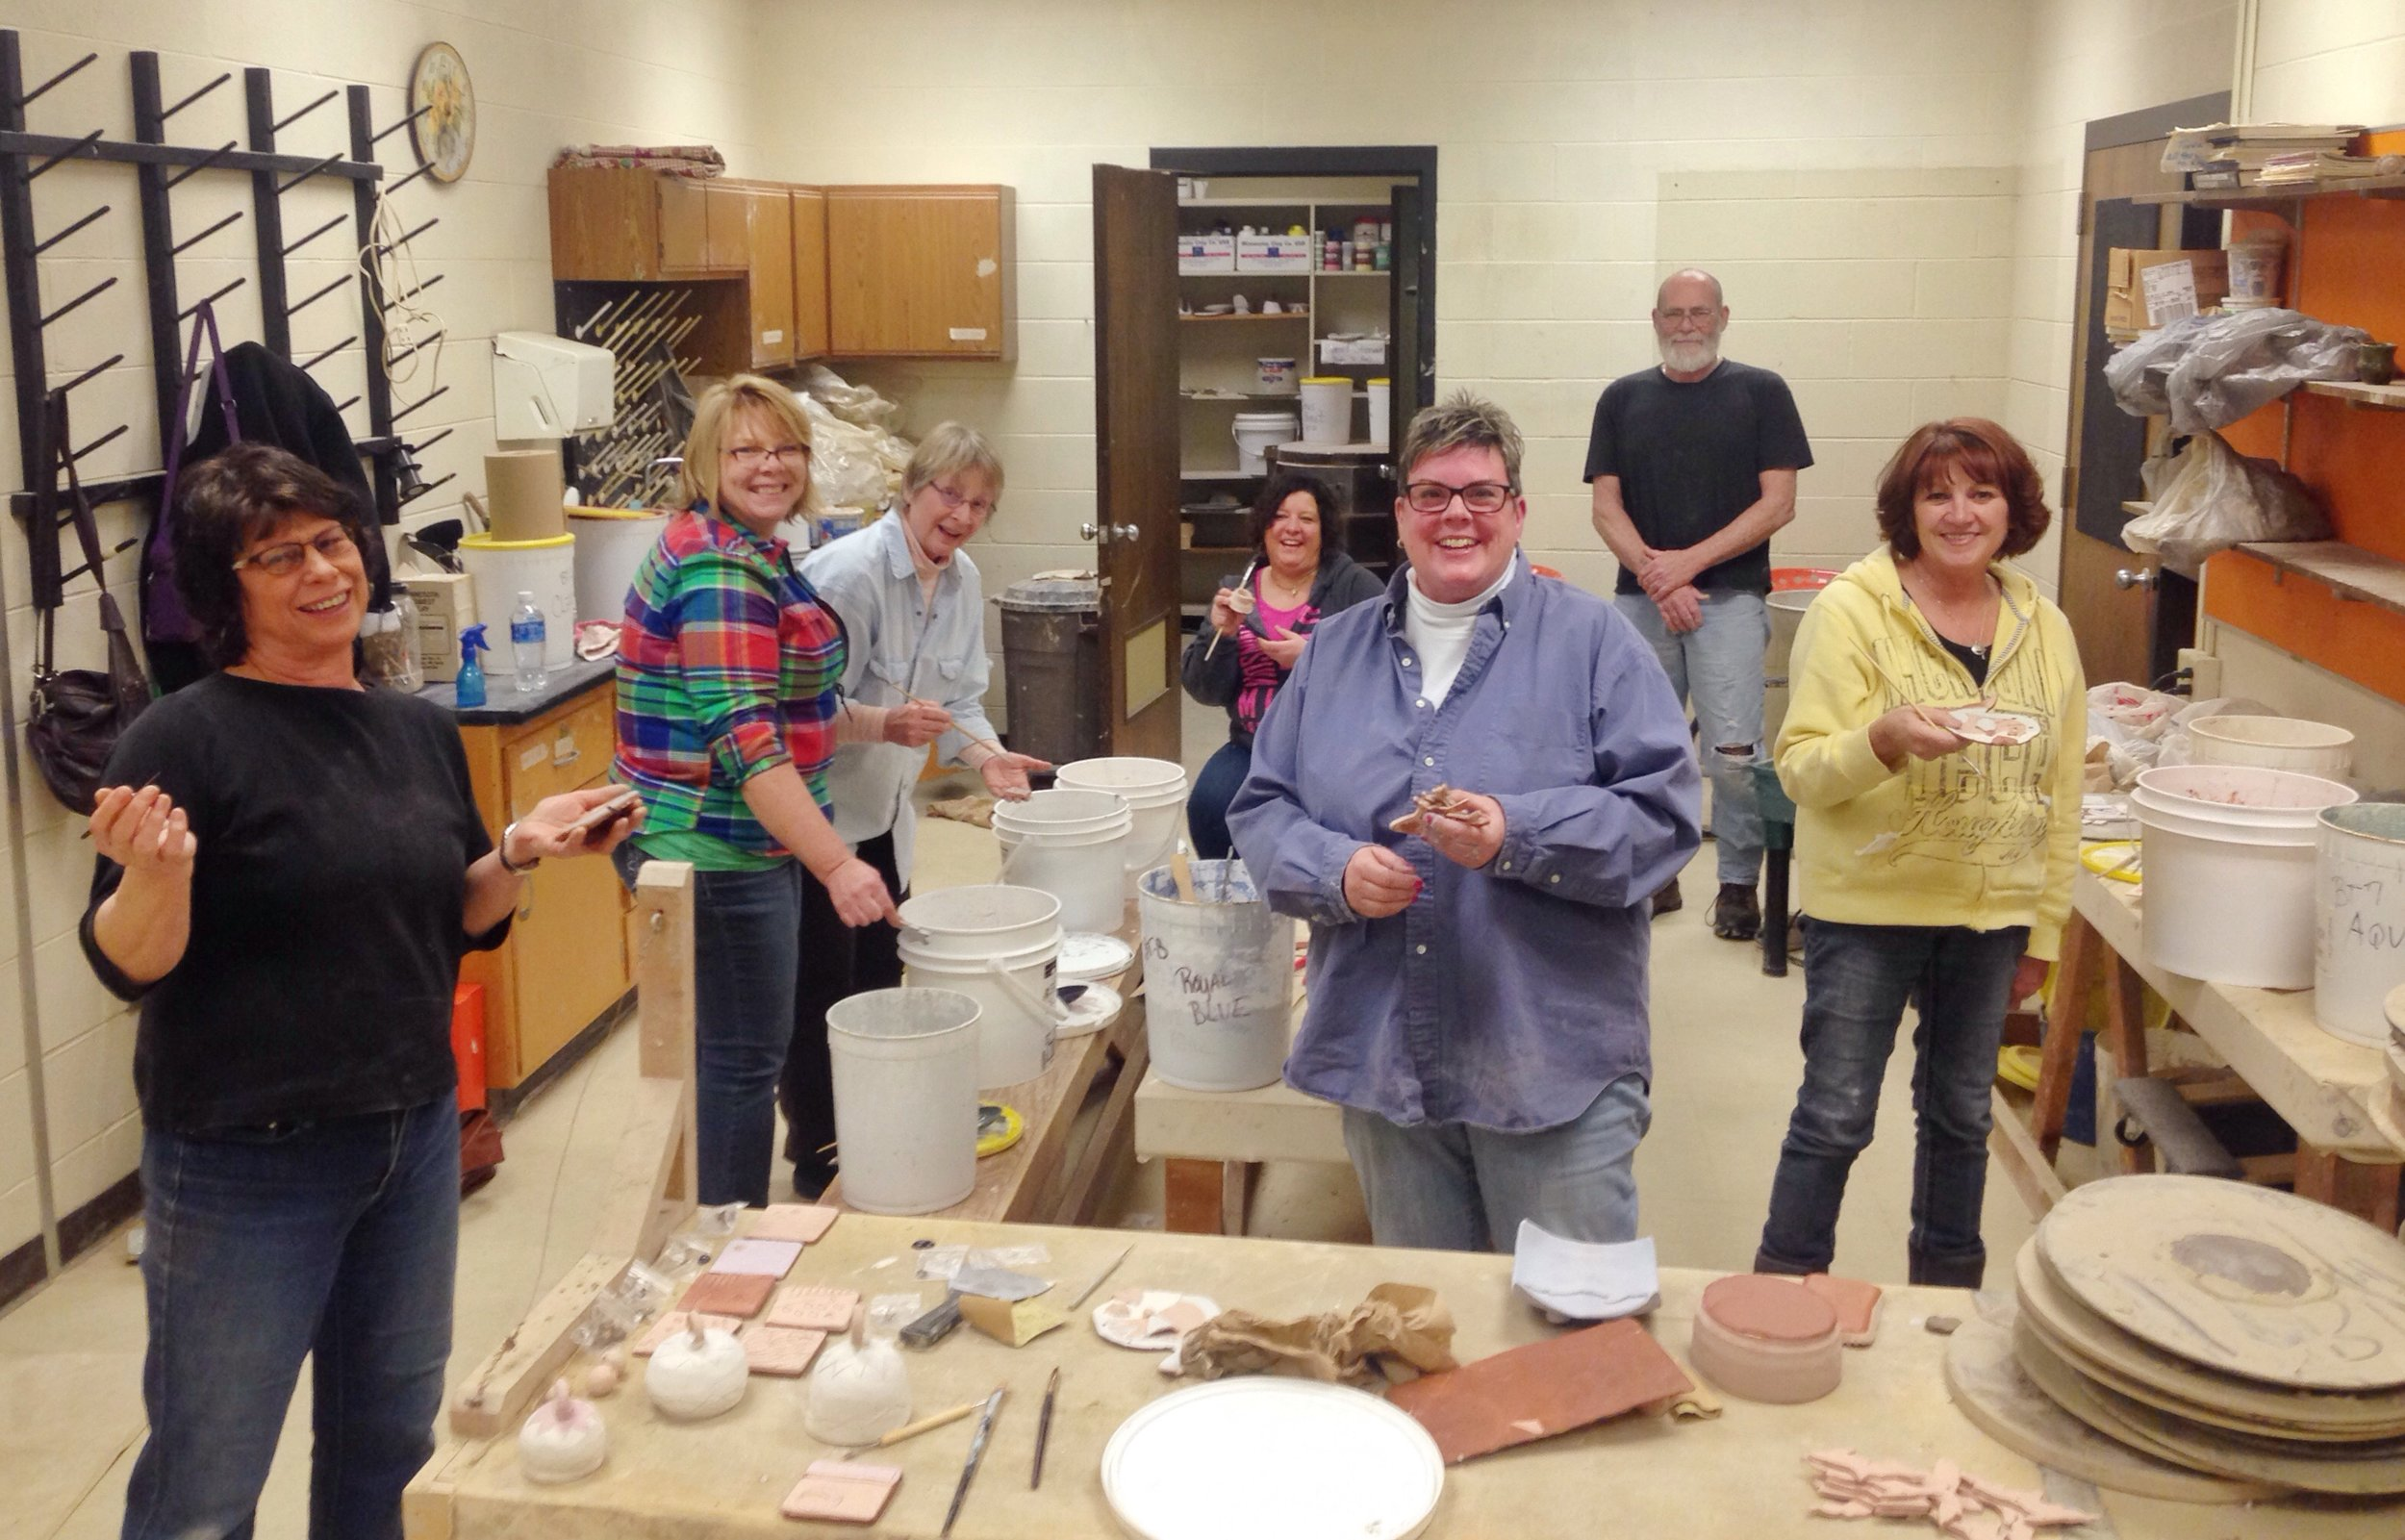 A full pottery room full of amazing people is a wonderful sight!